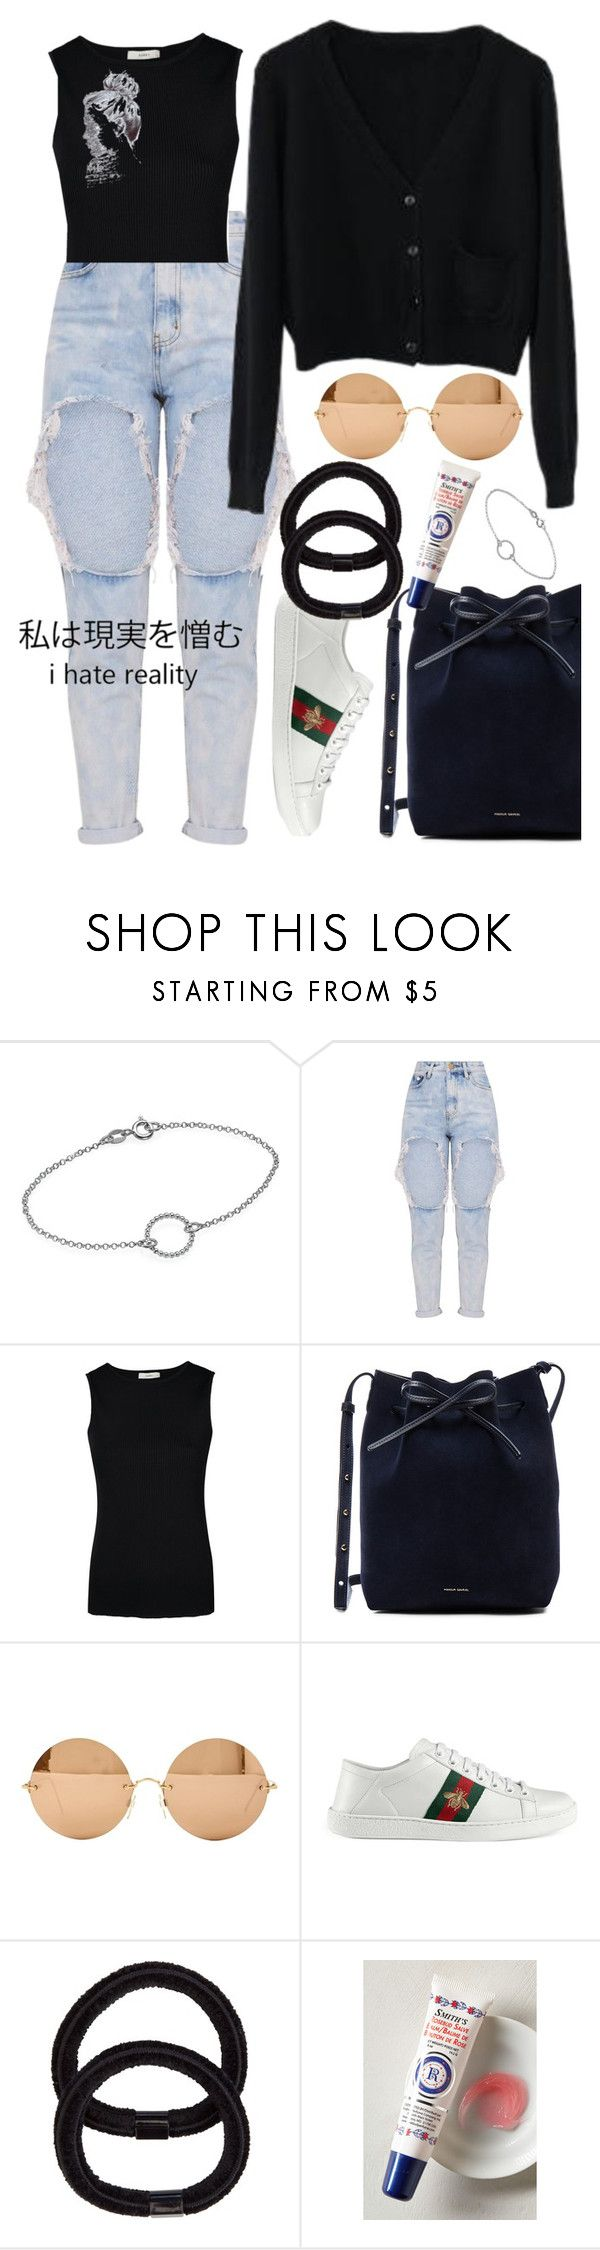 """""""Denim Is A Way Of Life"""" by sunsetttt ❤ liked on Polyvore featuring EGREY, Mansur Gavriel, Victoria Beckham, Gucci, John Lewis and Rosebud Perfume Co."""